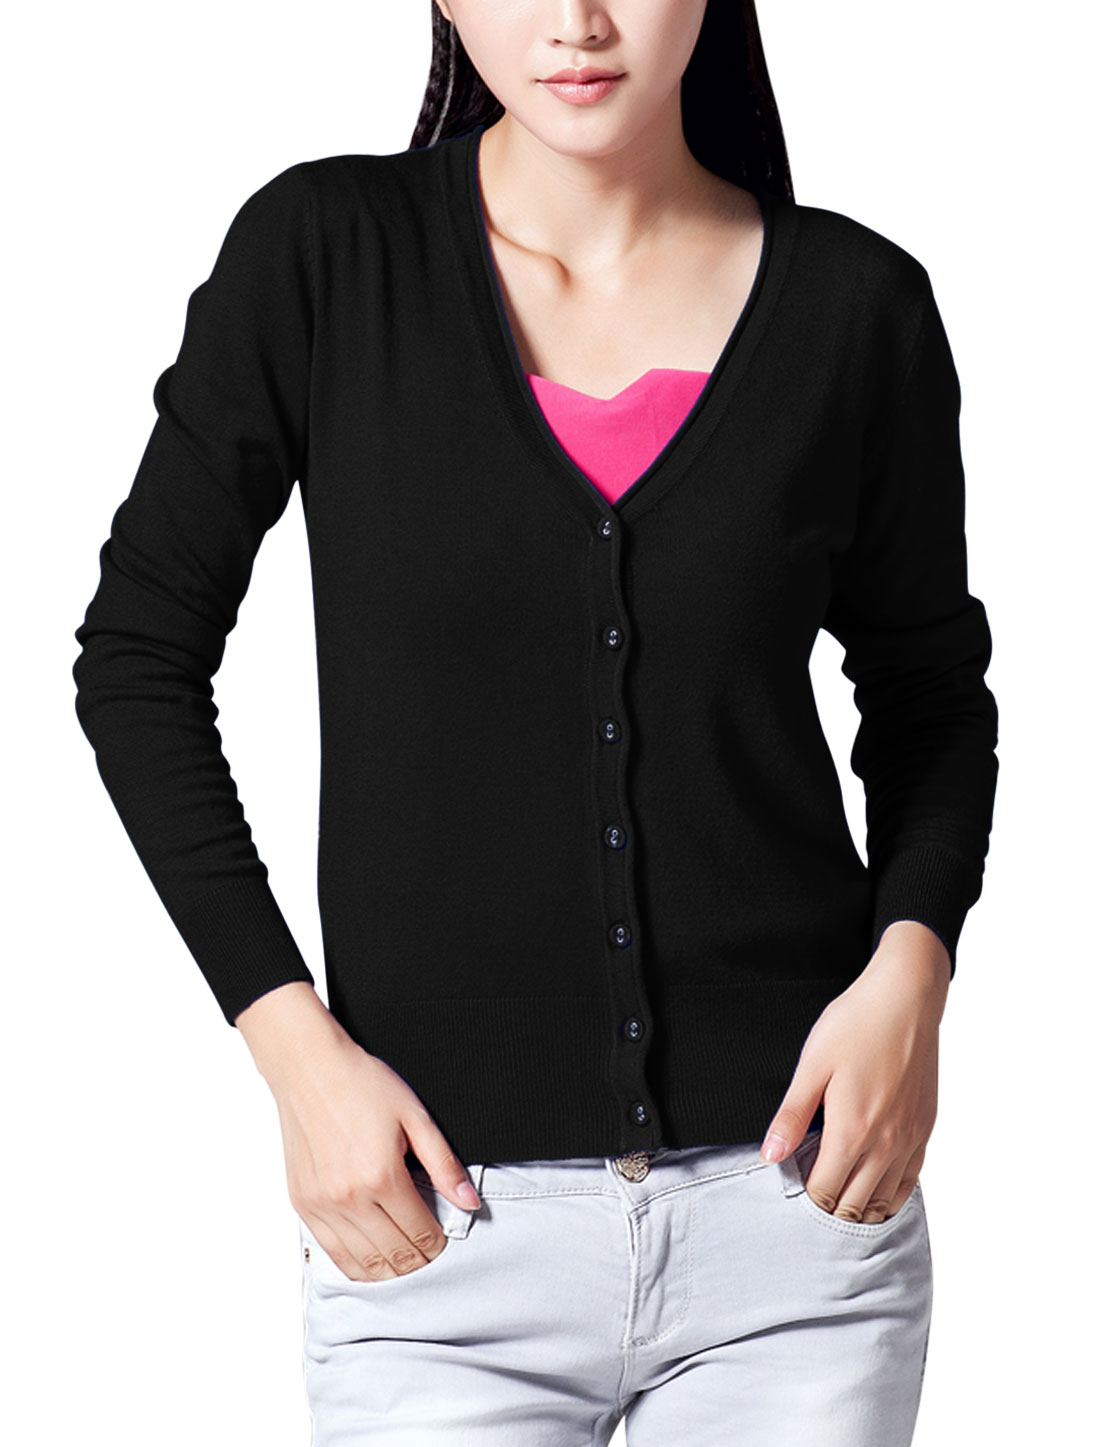 Lady Long Raglan Sleeve Single Breasted Casual Knit Cardigan Black M